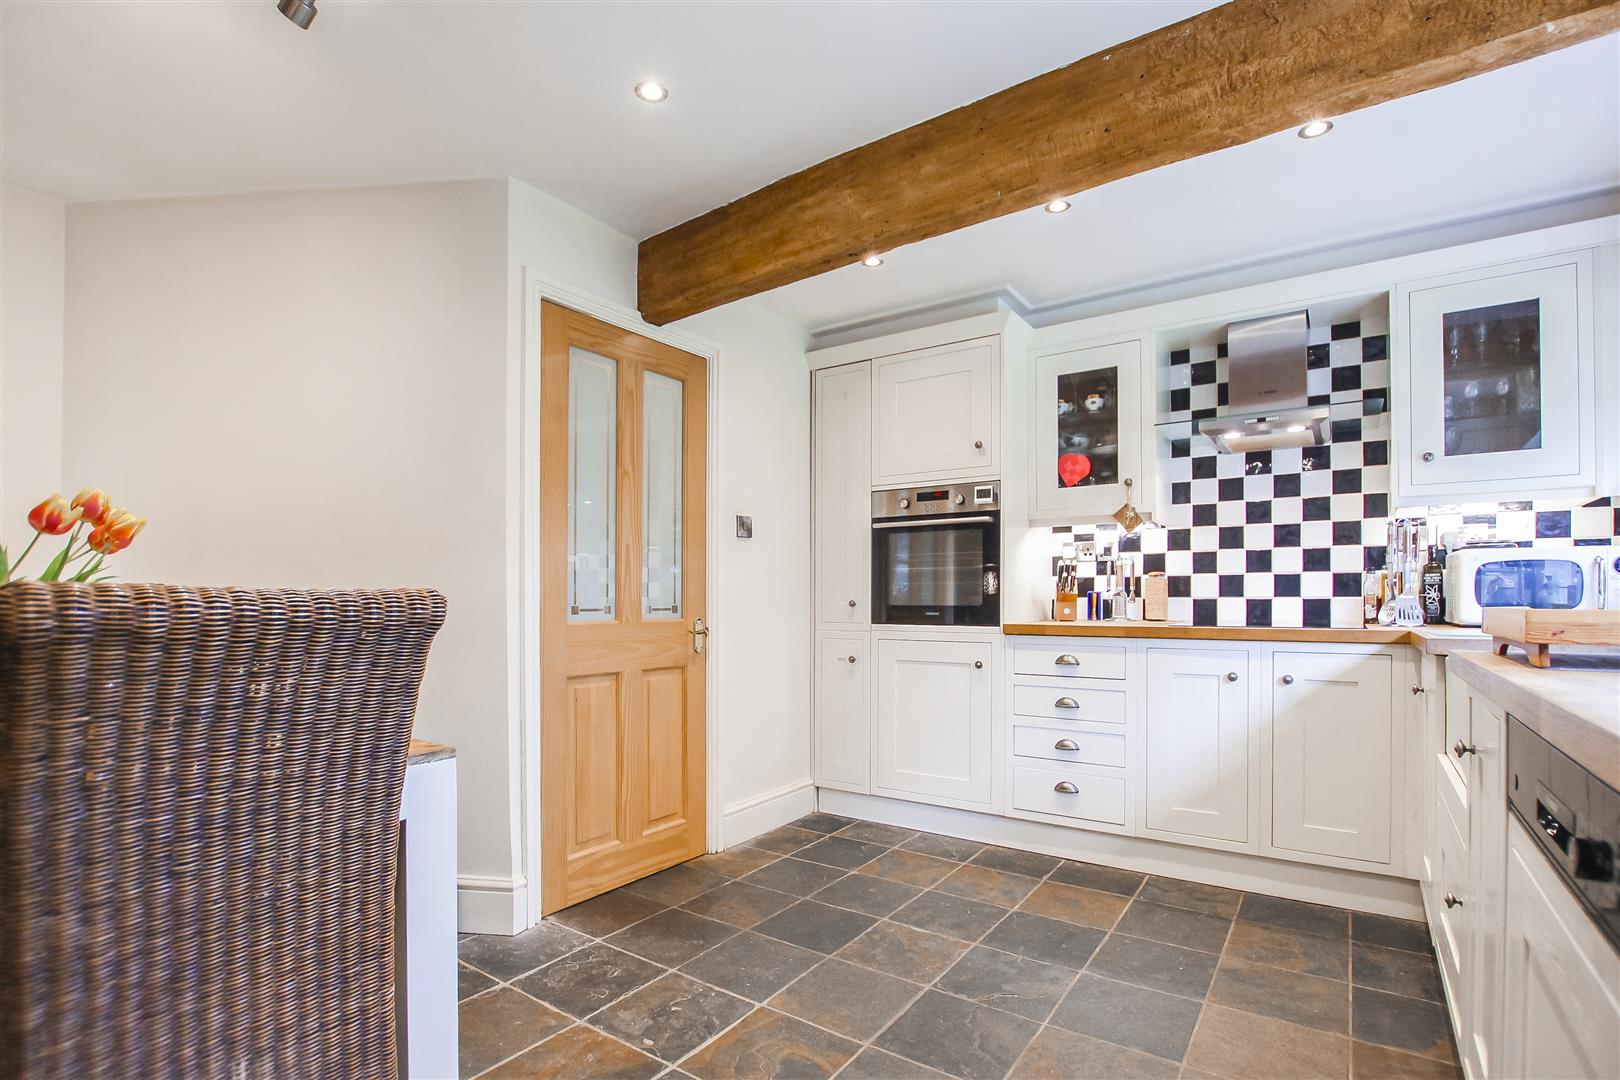 4 Bedroom Farmhouse For Sale - Image 49